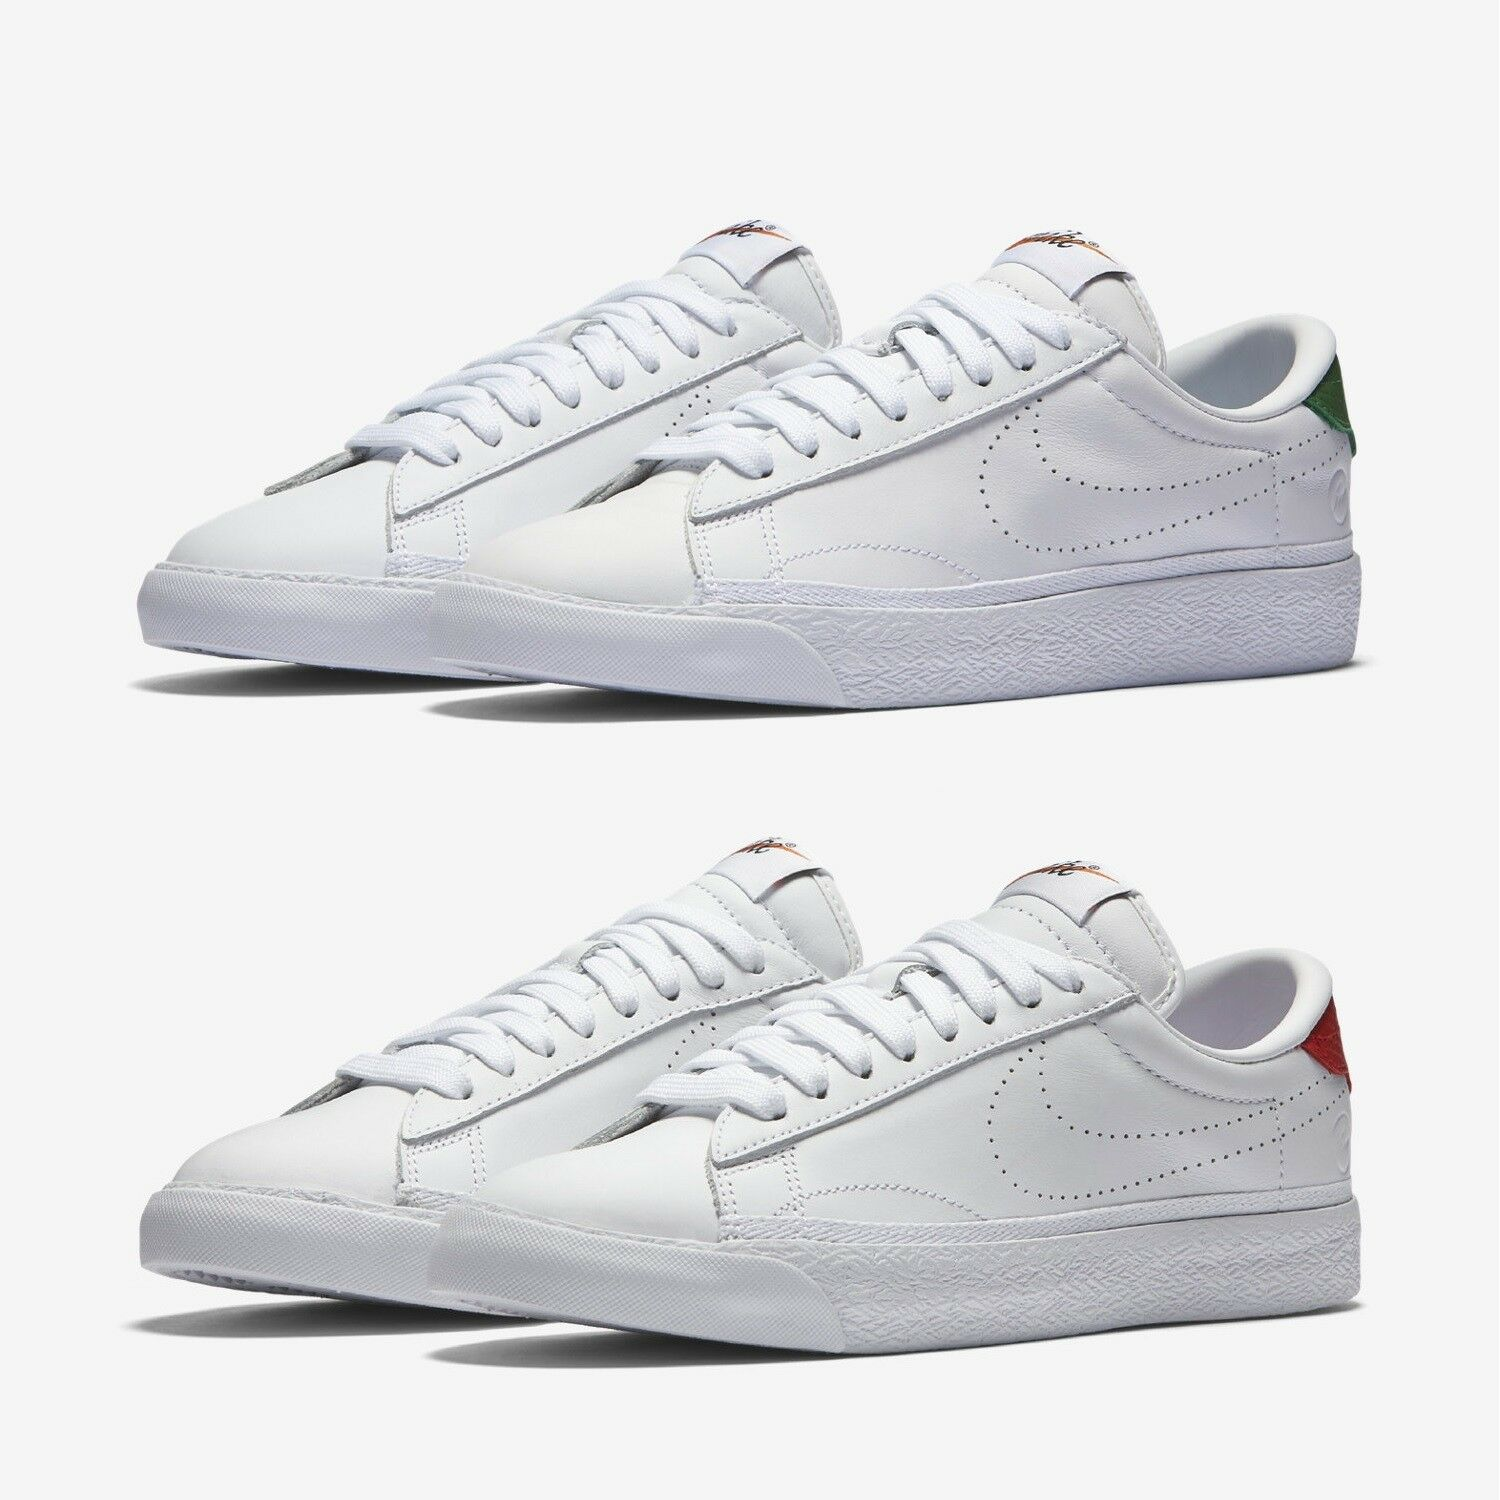 Nike Zoom Tennis Classic AC/FGMT Women's Shoes - NIB 113: White/Apple Green,115: White/Red